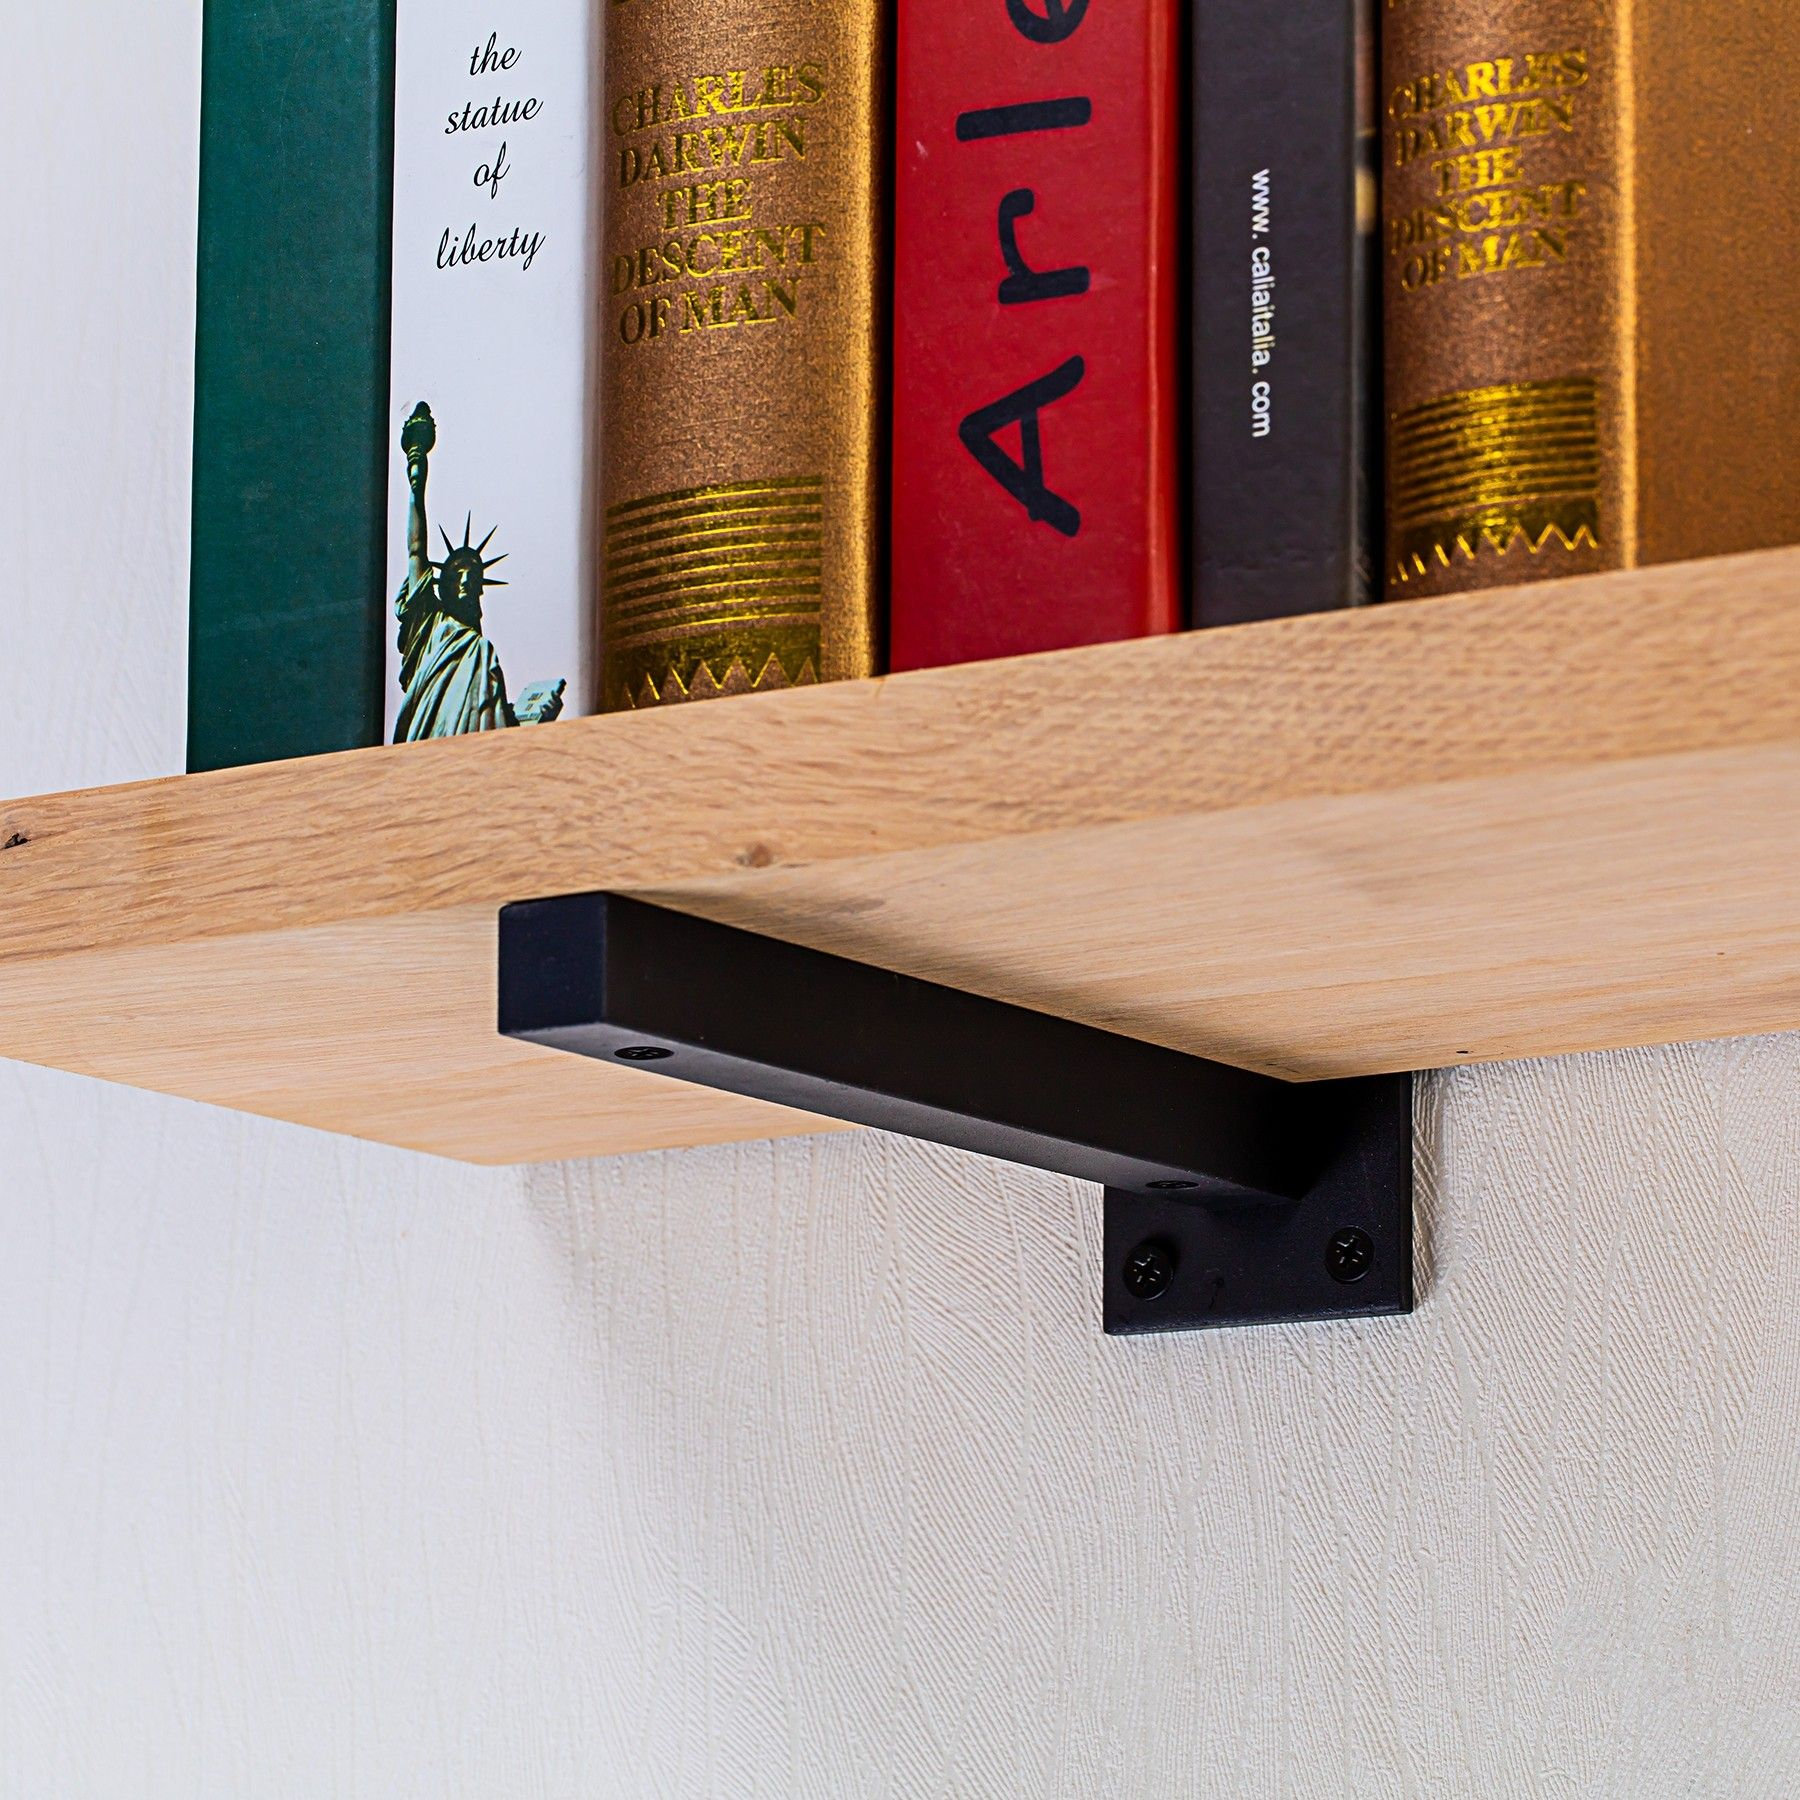 Alcott Shelf Bracket Set Matte Black Floating Shelf Brackets